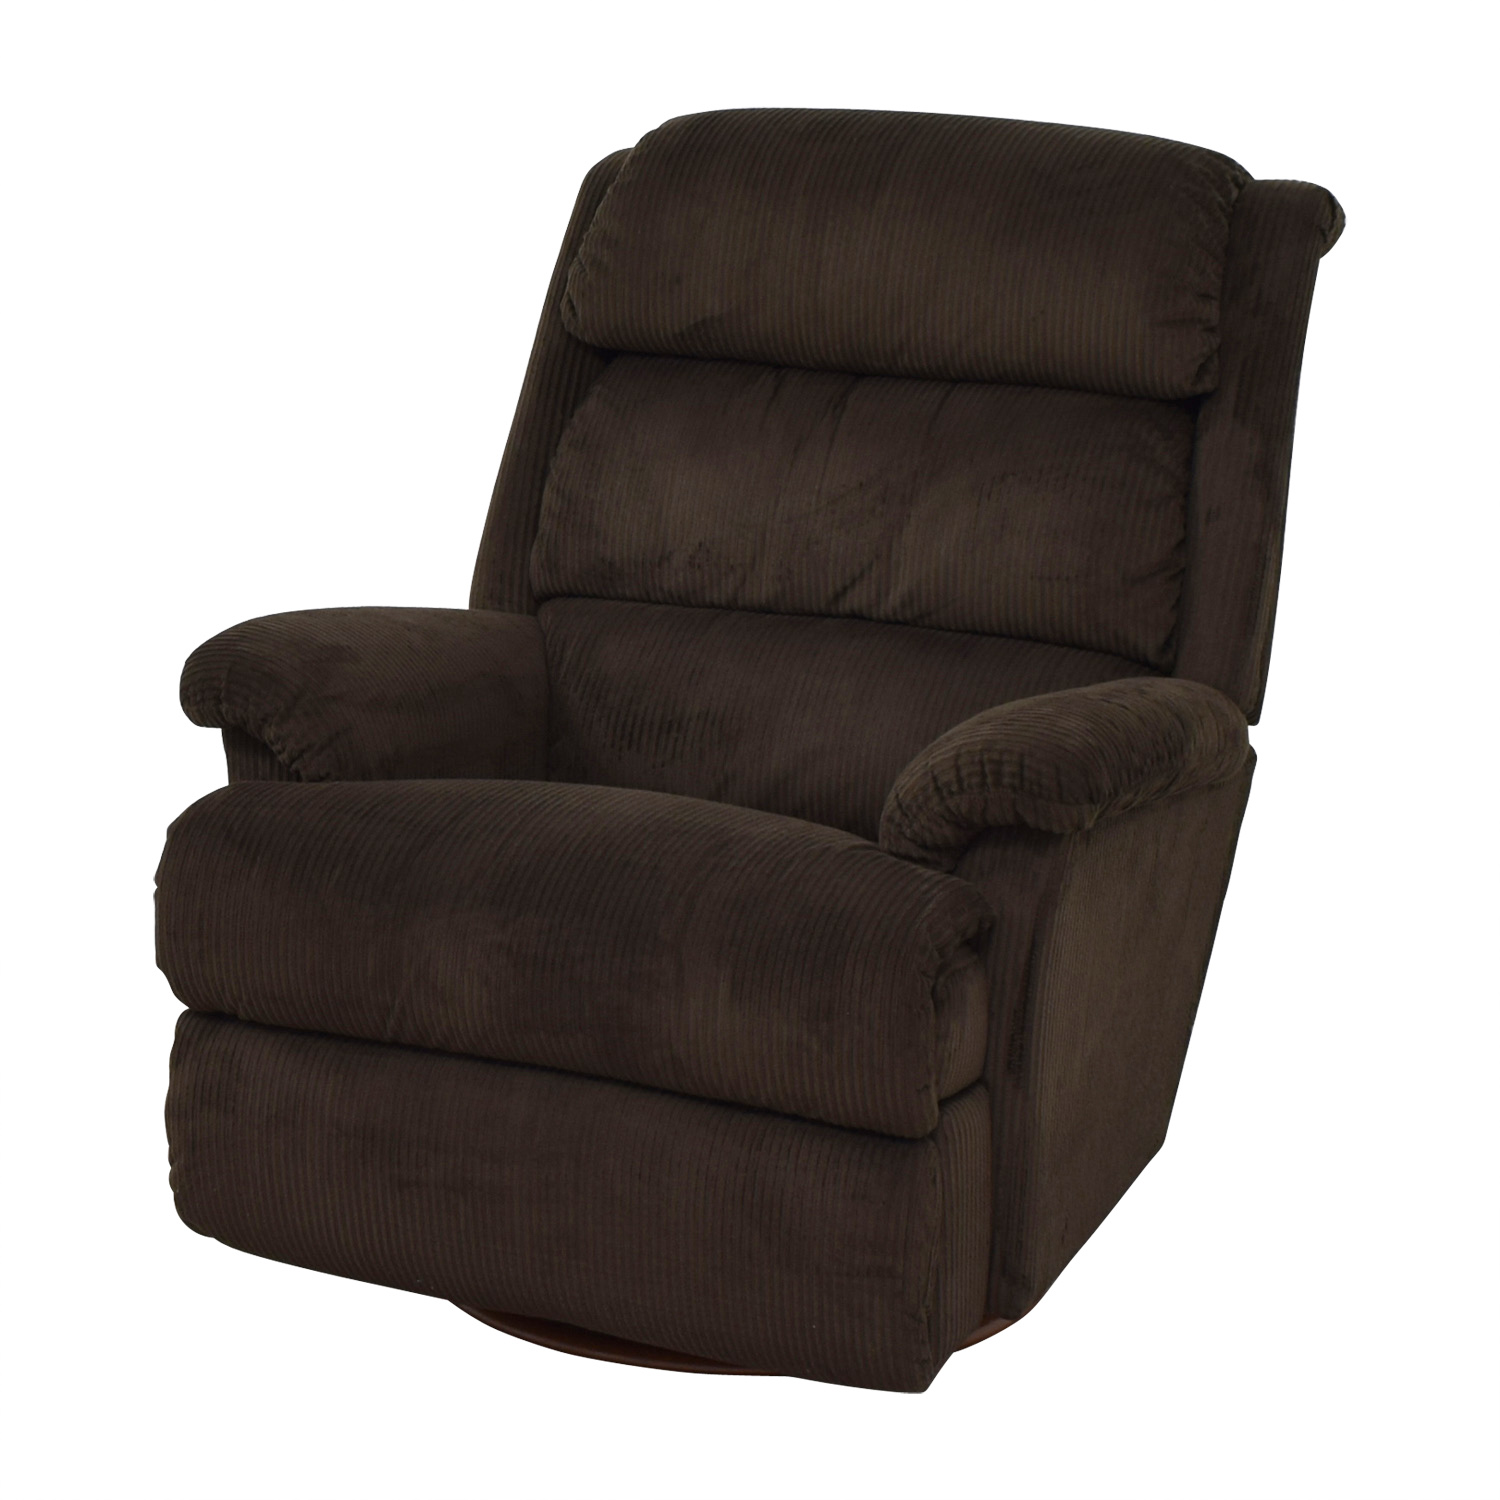 Lazy Boy Chairs. Home. Furniture. Lazy Boy Chairs. Store availability. Search your store by entering zip code or city, state. Go. Sort. Best match Product - Replacement Car Door Flapper Style Recliner Handle for Lazy Boy La-Z-Boy. Product Image. Price $ Product Title.